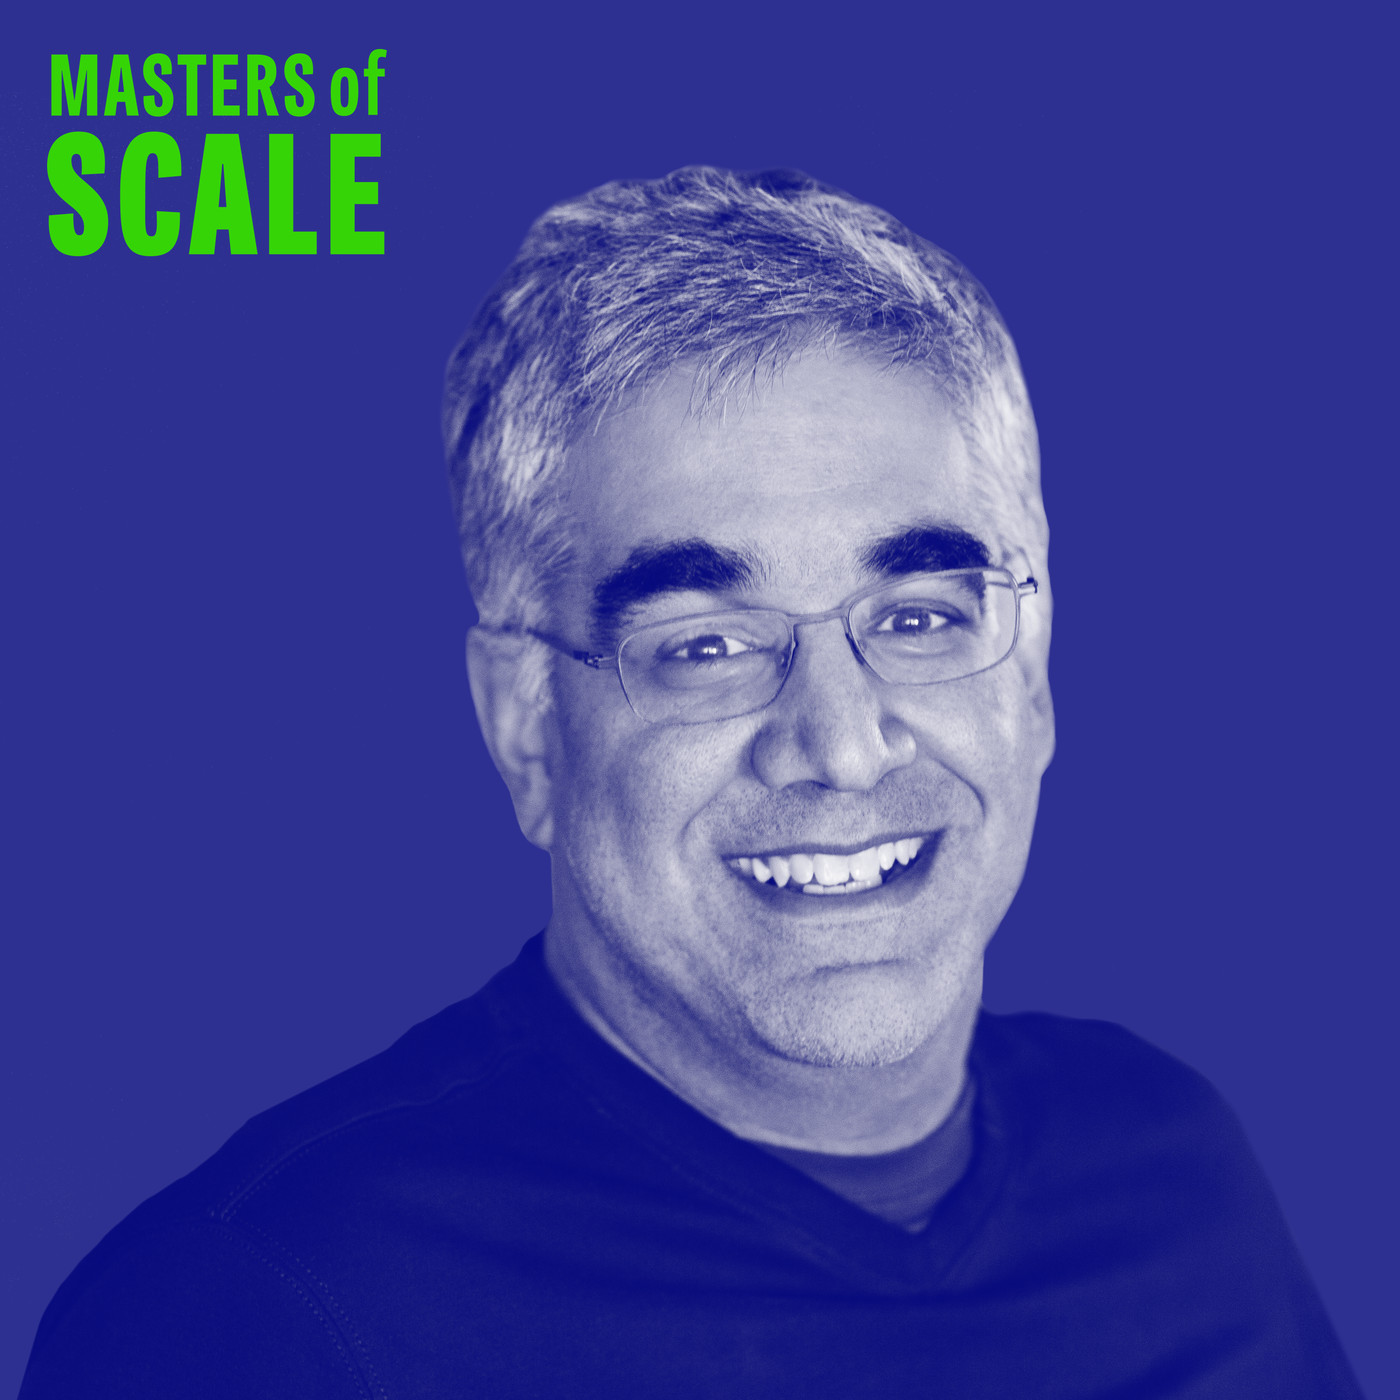 The elusive formula for great hiring w/Workday's Aneel Bhusri